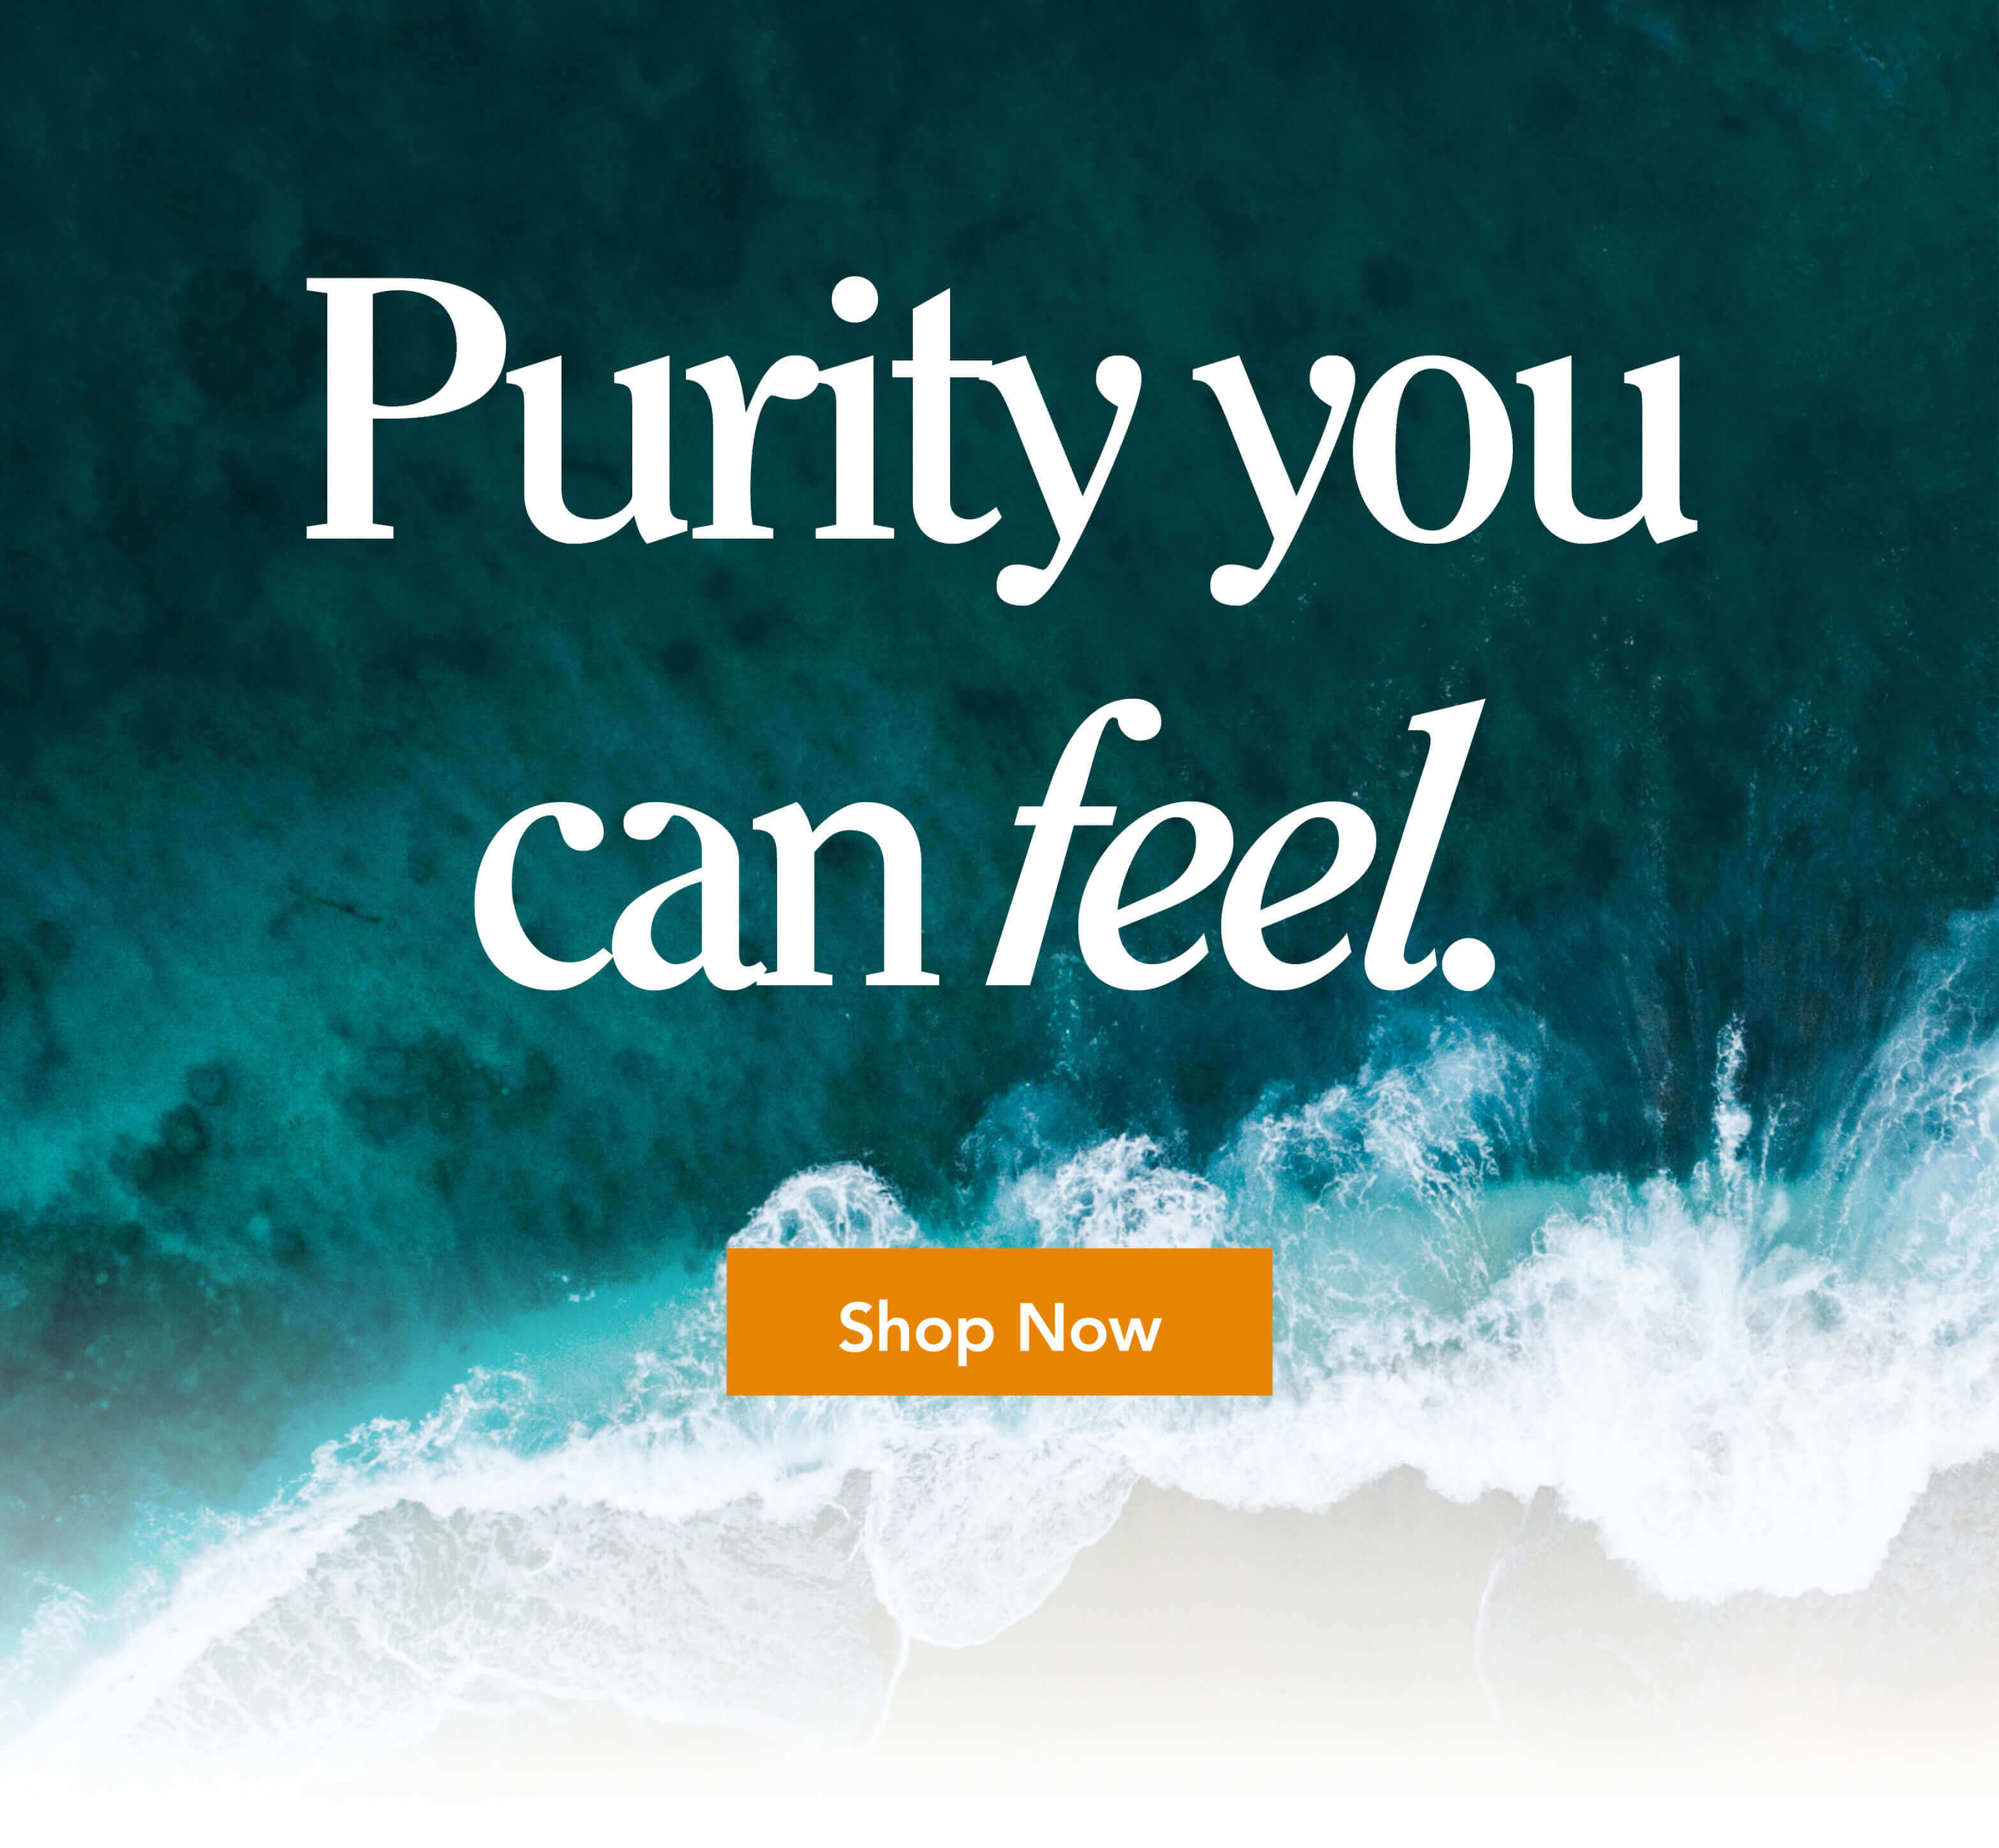 Minami - Purity you can feel. Welcome to Minami. We create Omega-3 products tailored to different lifestyles and life stages. Our unique, advanced process ensures our products are highly concentrated and highly sustainable, for a purity you can feel and trust.